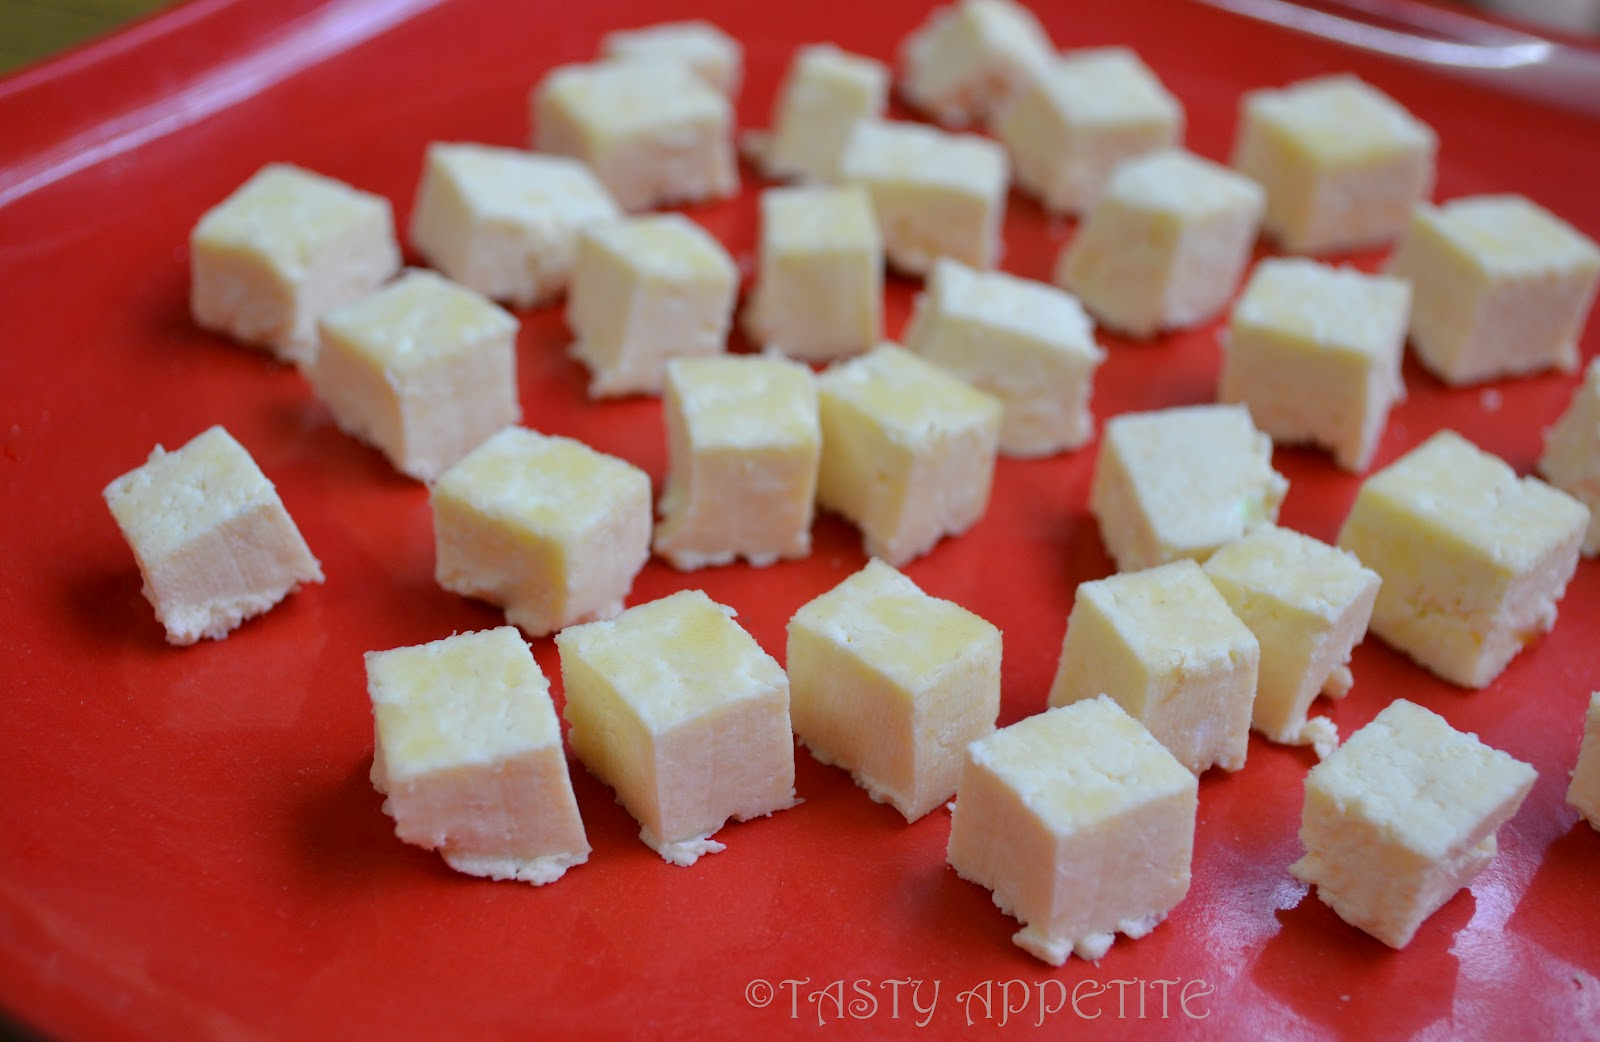 How to make Paneer / Indian Cottage Cheese: